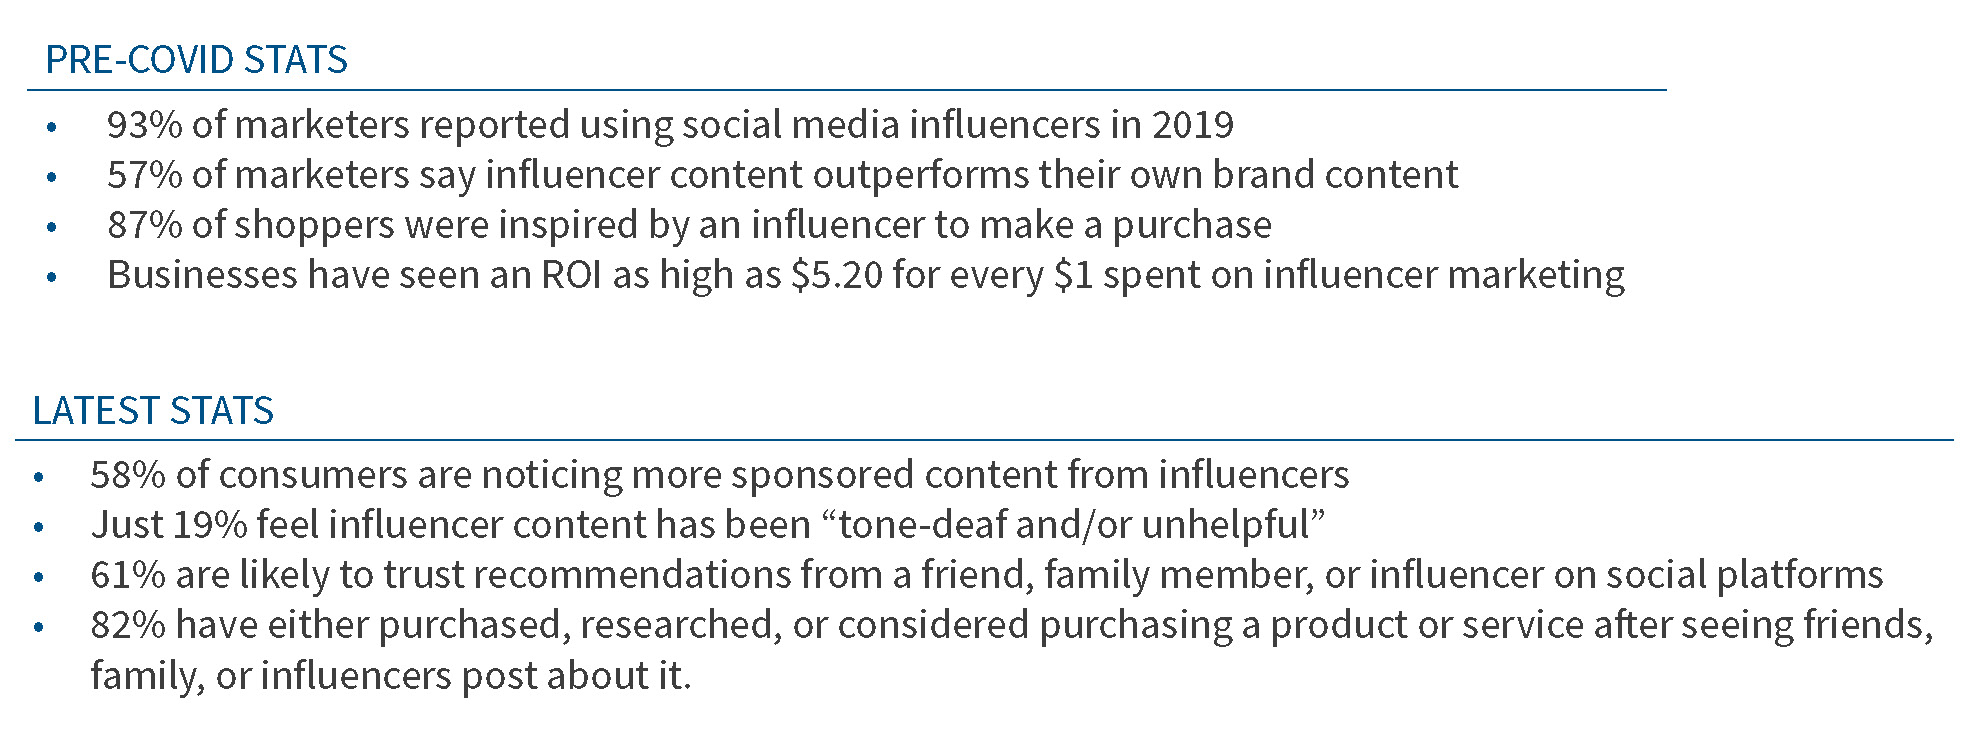 Statistics about Influencer Marketing, pre-COVID to today